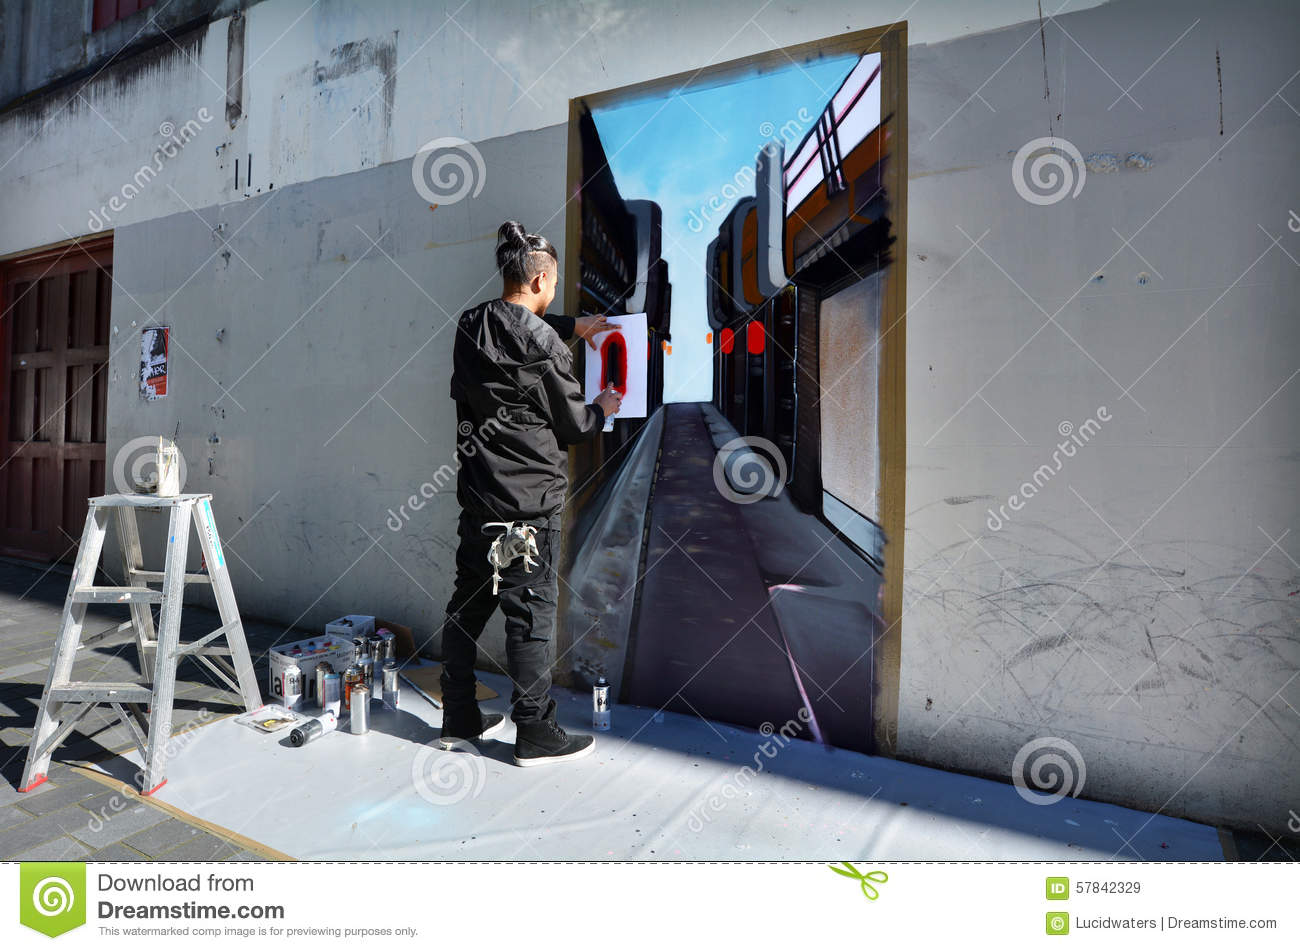 Graffiti artist paint a mural on a wall editorial stock image graffiti artist paint a mural on a wall amipublicfo Image collections